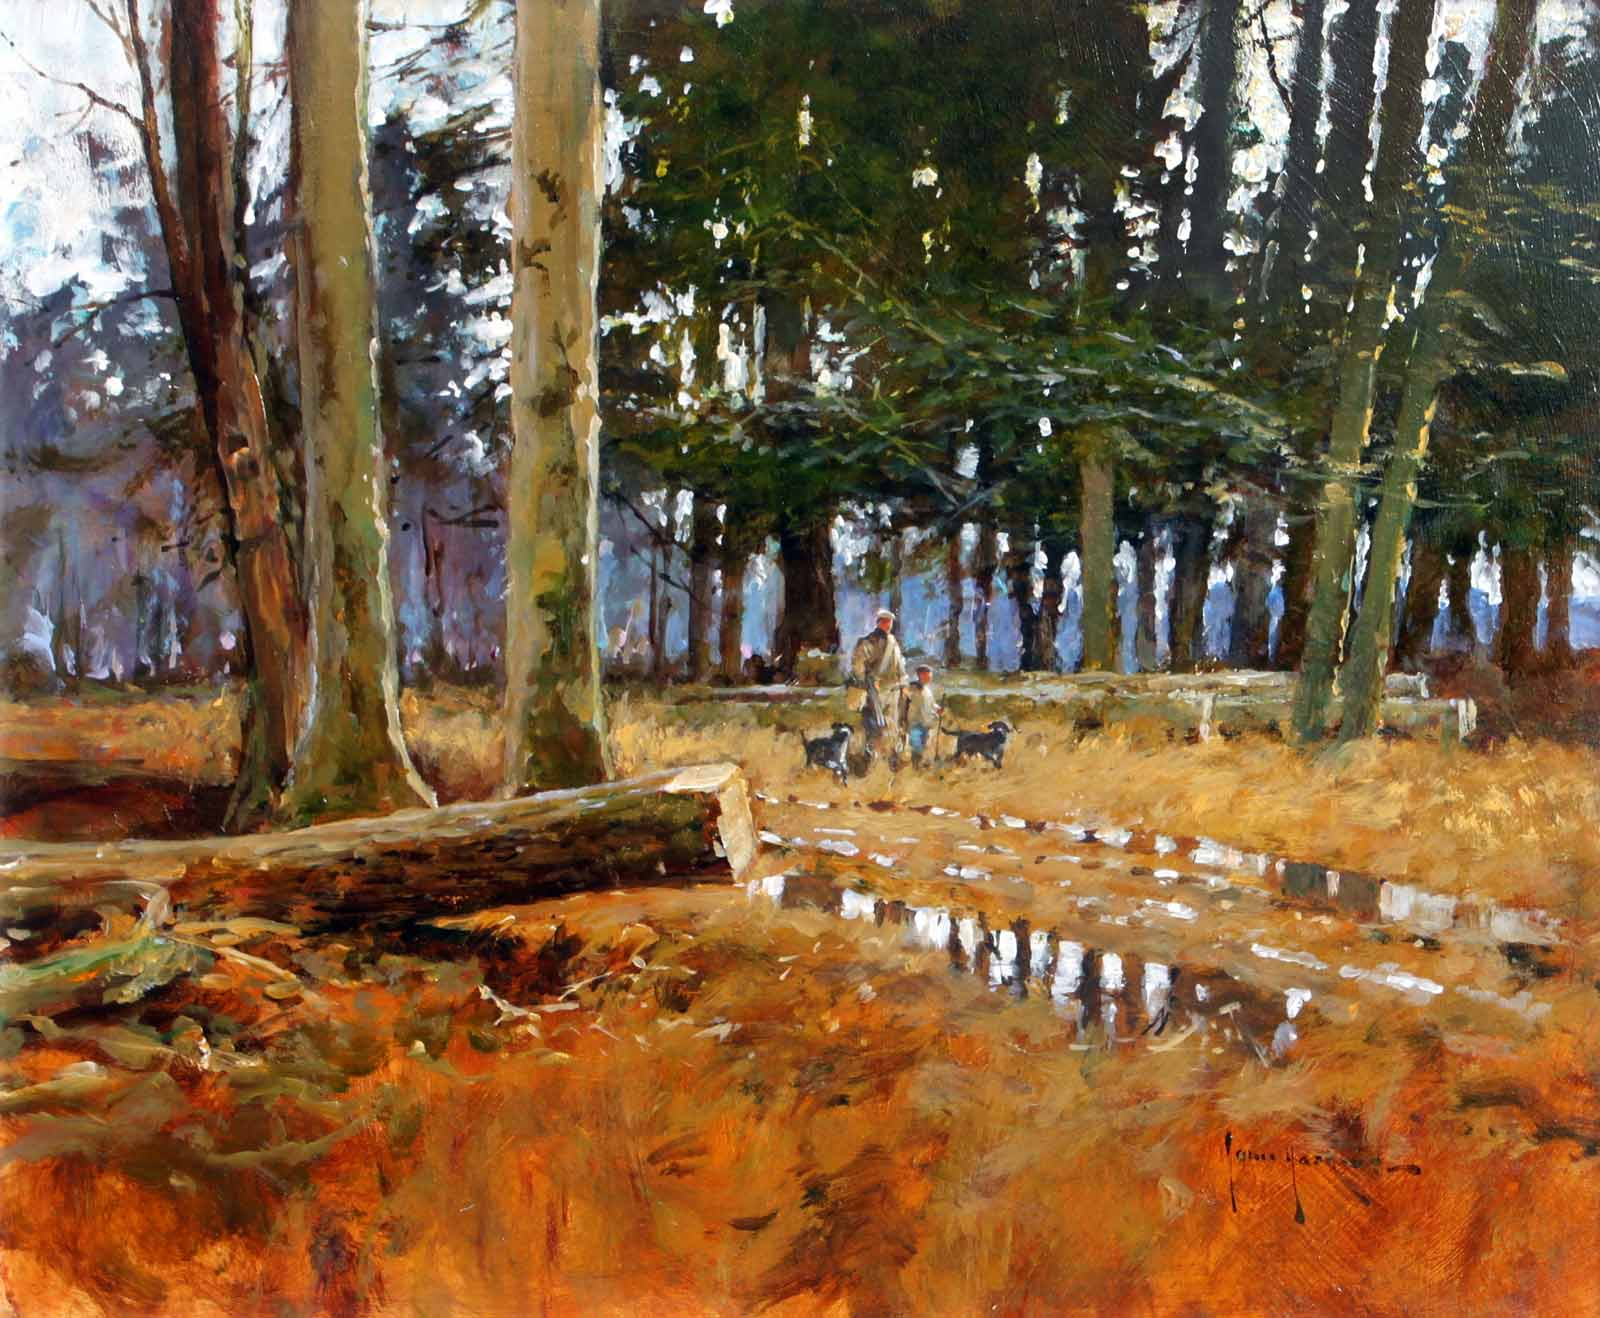 Autumn Walk in the Forest, John Haskins